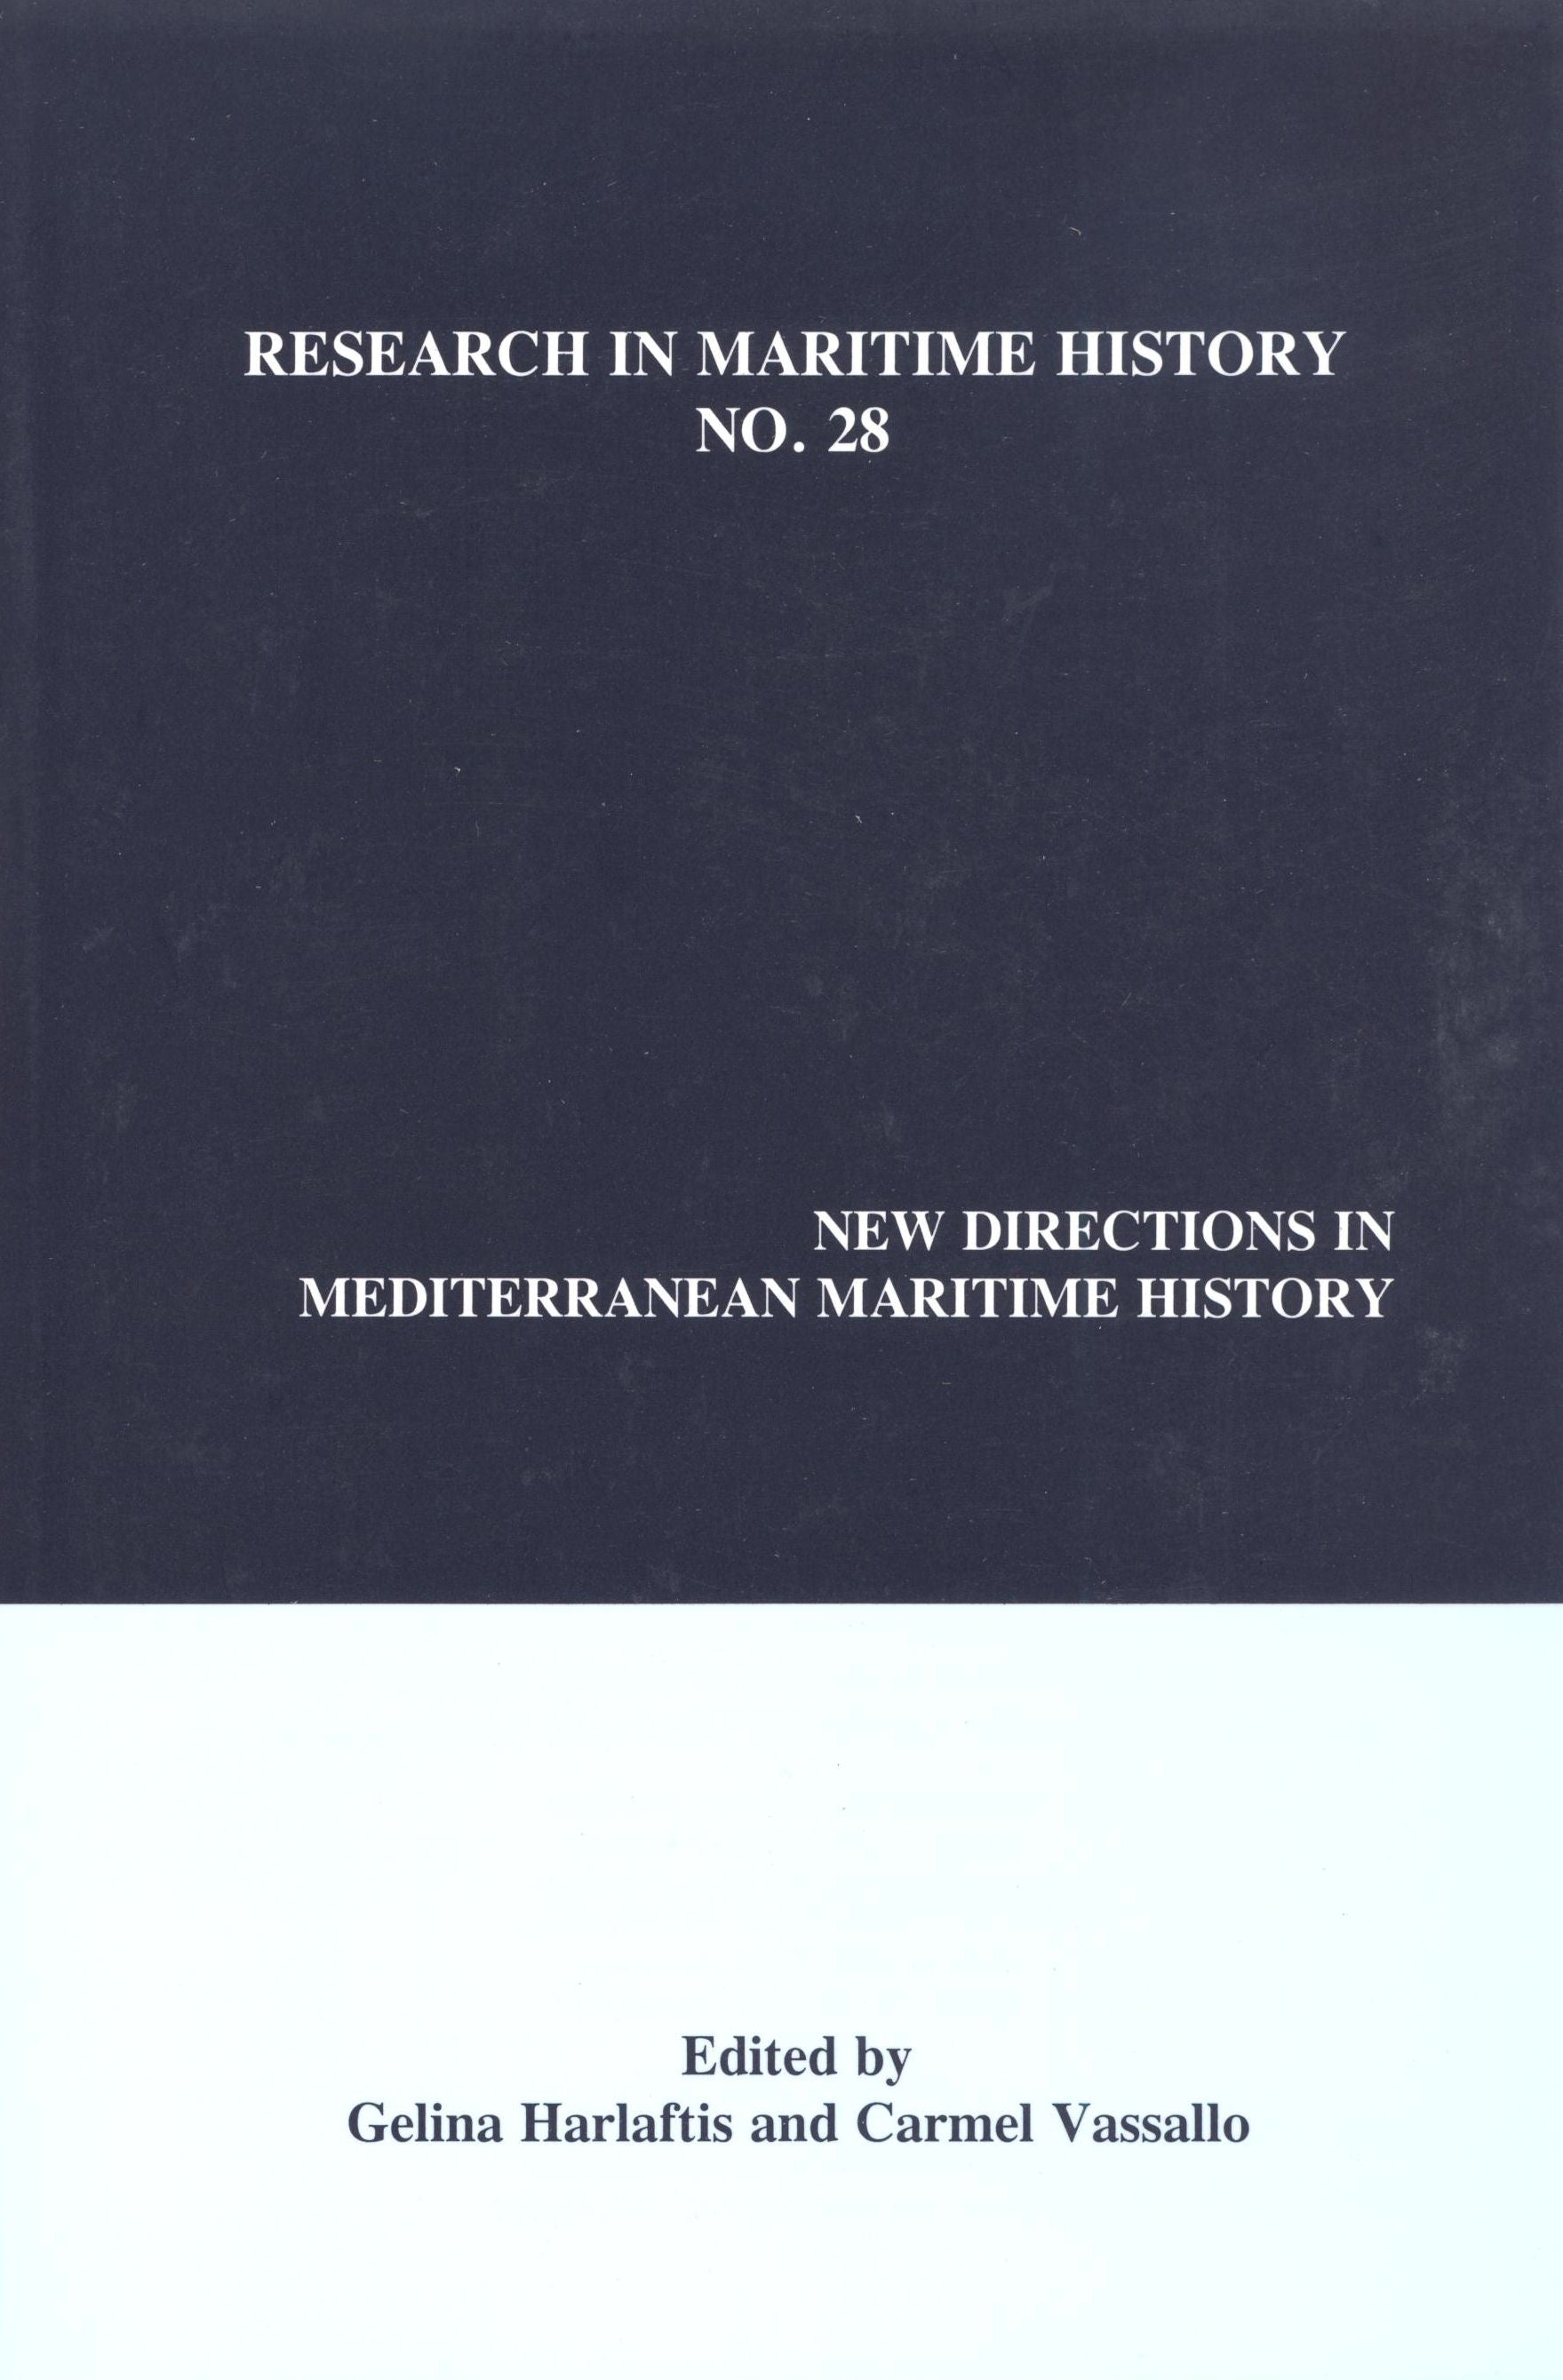 New Directions in Mediterranean Maritime History